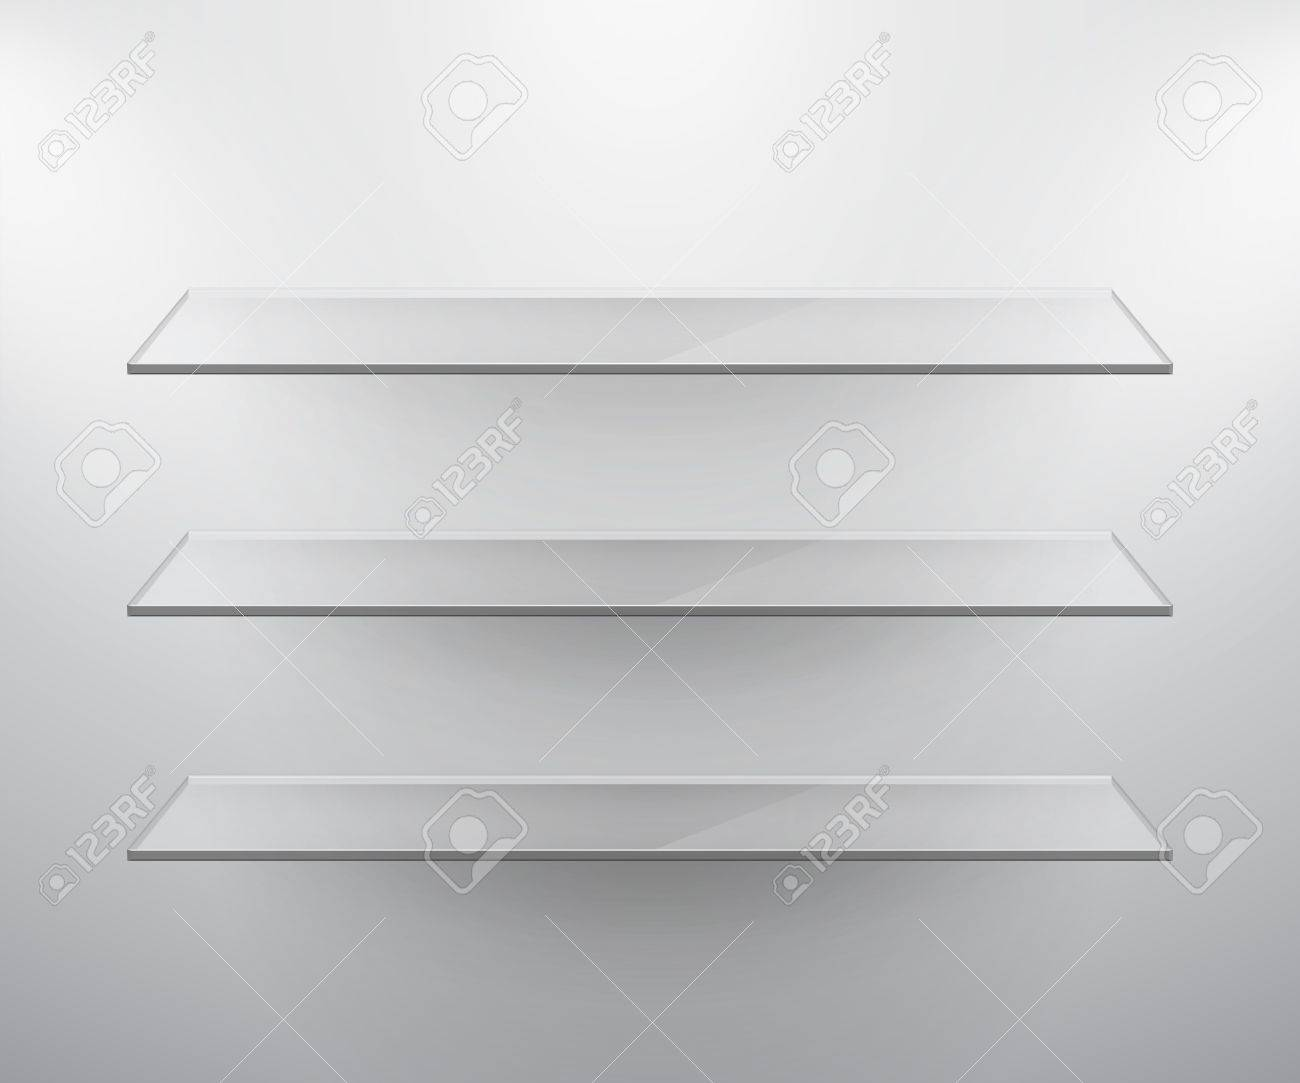 Glass isolated Empty shelves for exhibit. Vector illustration. Stock Vector - 14748526